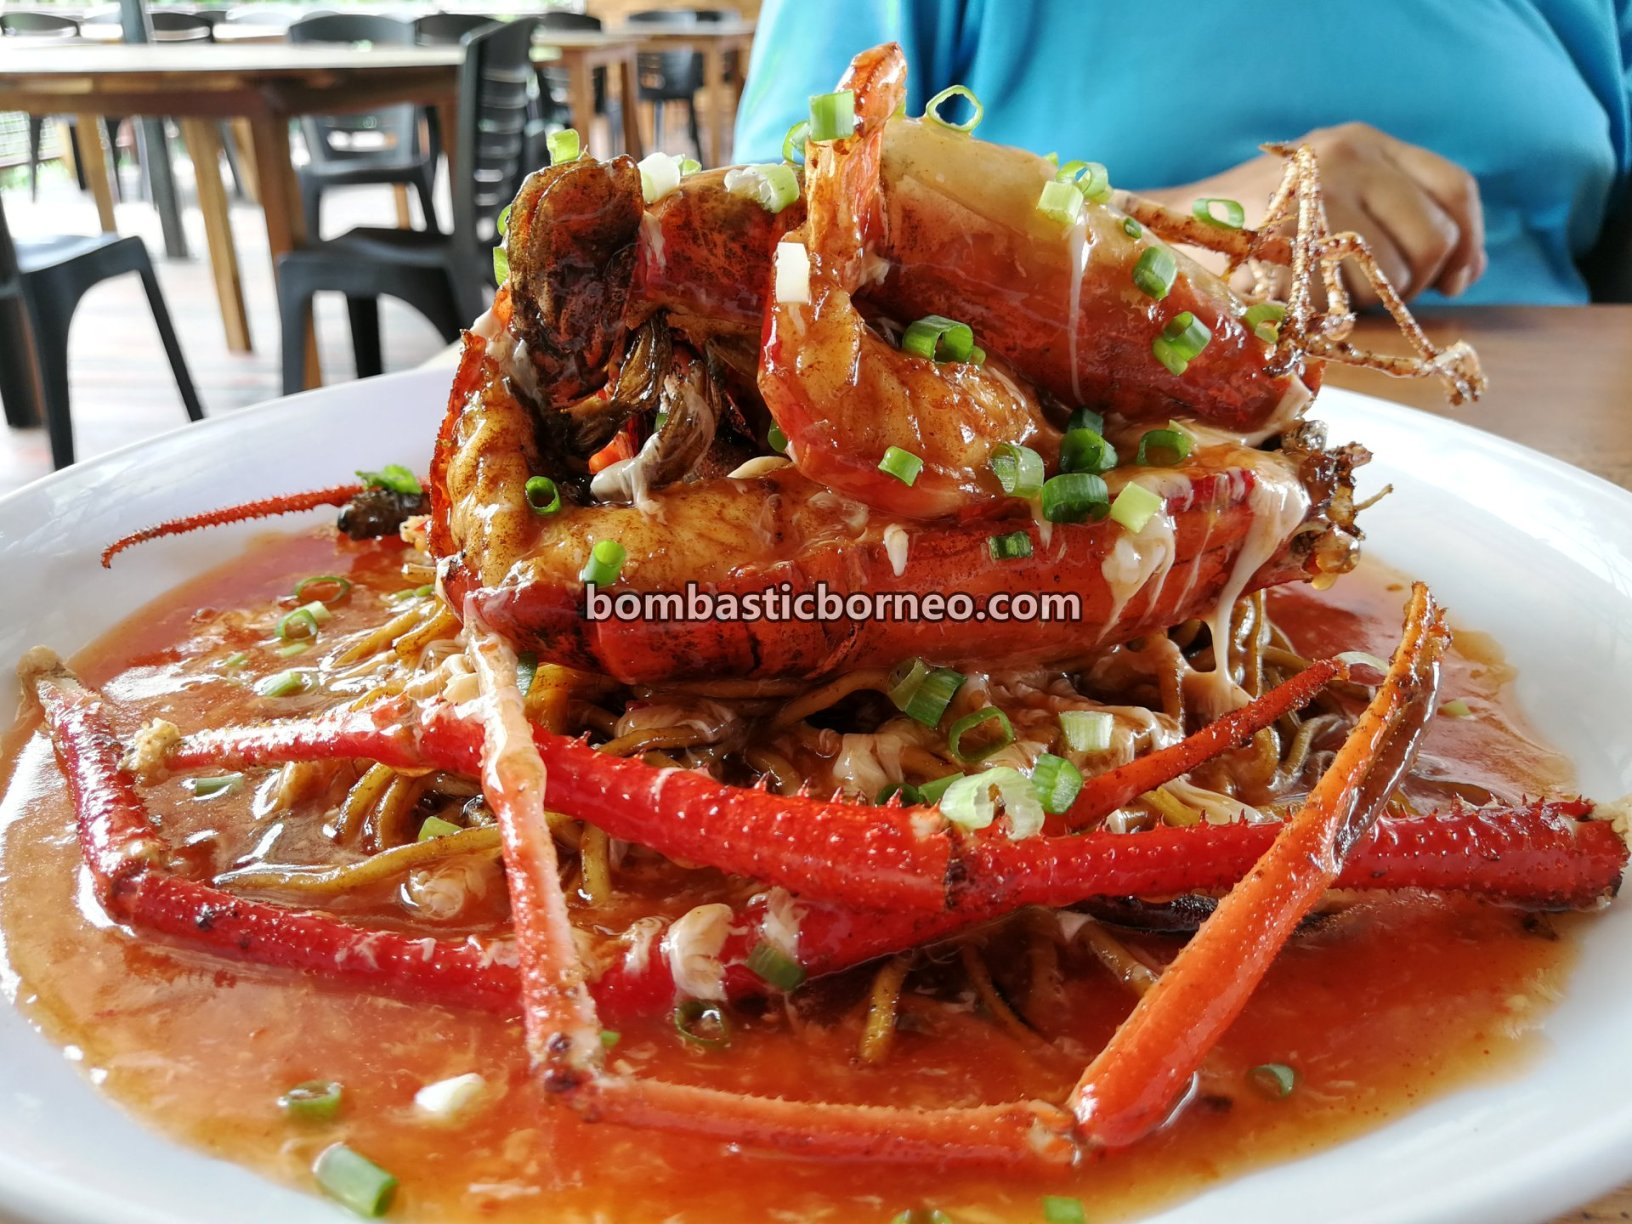 udang galah, Tomato Sauce Big Head Prawn, freshwater prawn, Blue Legged King Prawn, Giant Prawn, destination, food, exotic delicacy, Serian, Malaysia, Sarawak, Borneo, Tourism, tourist attraction, travel guide, 马来西亚淡水蓝脚虾